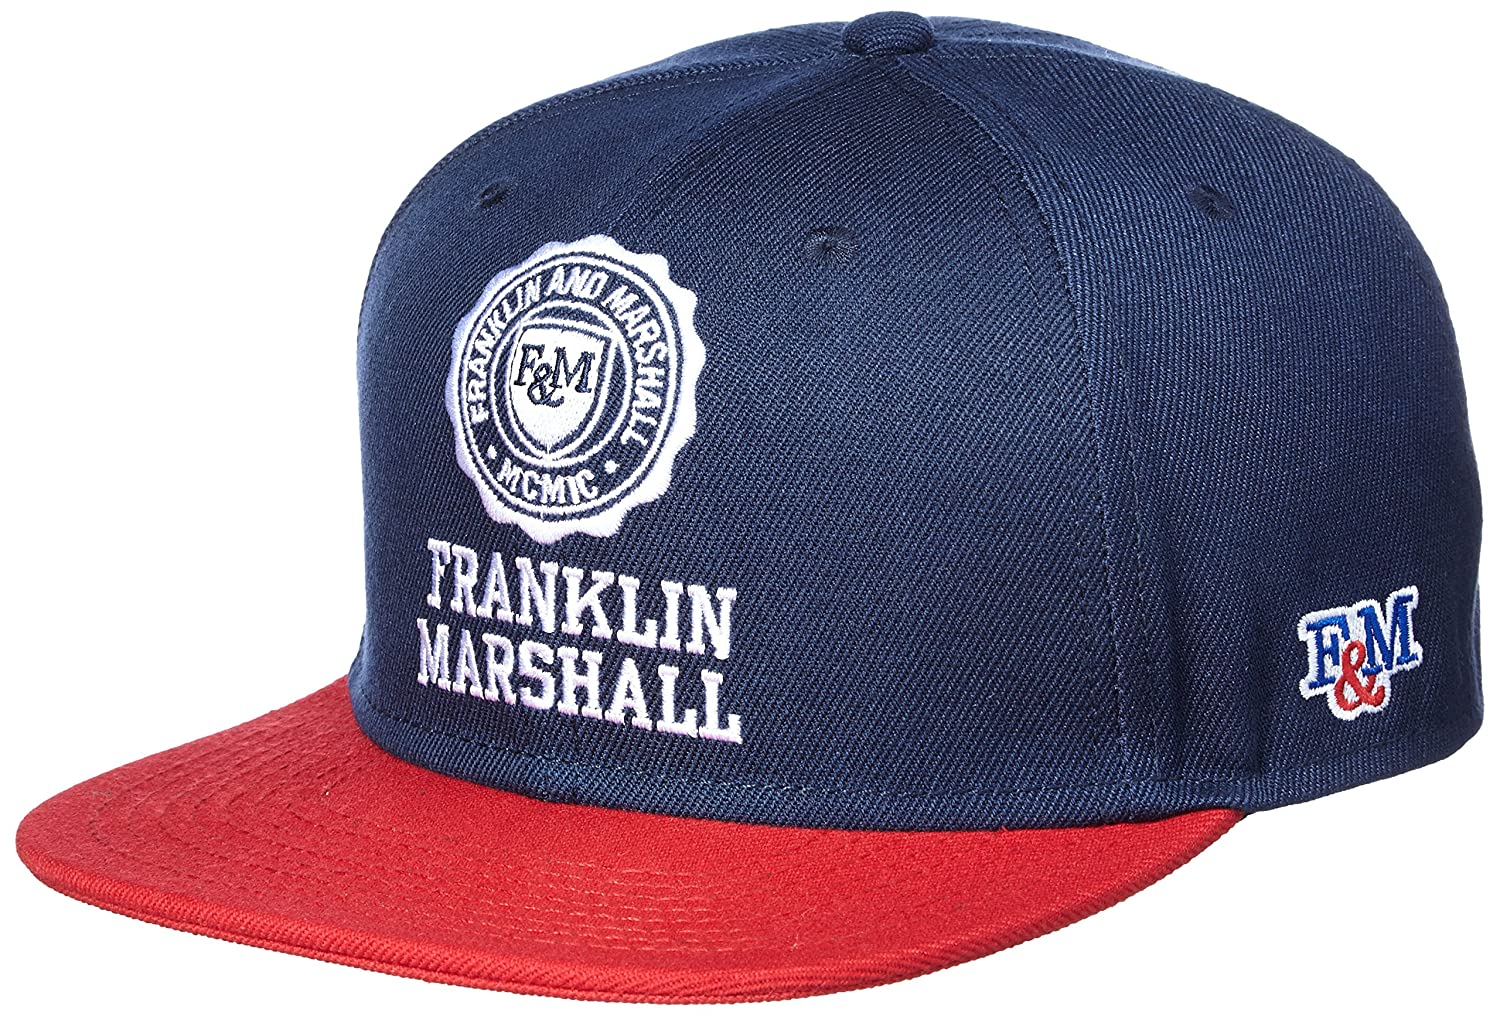 Franklin   Marshall CPUA901 Unisex Flat Trim Navy Snap Cap 58   Amazon.co.uk  Clothing 30dae53af1c5